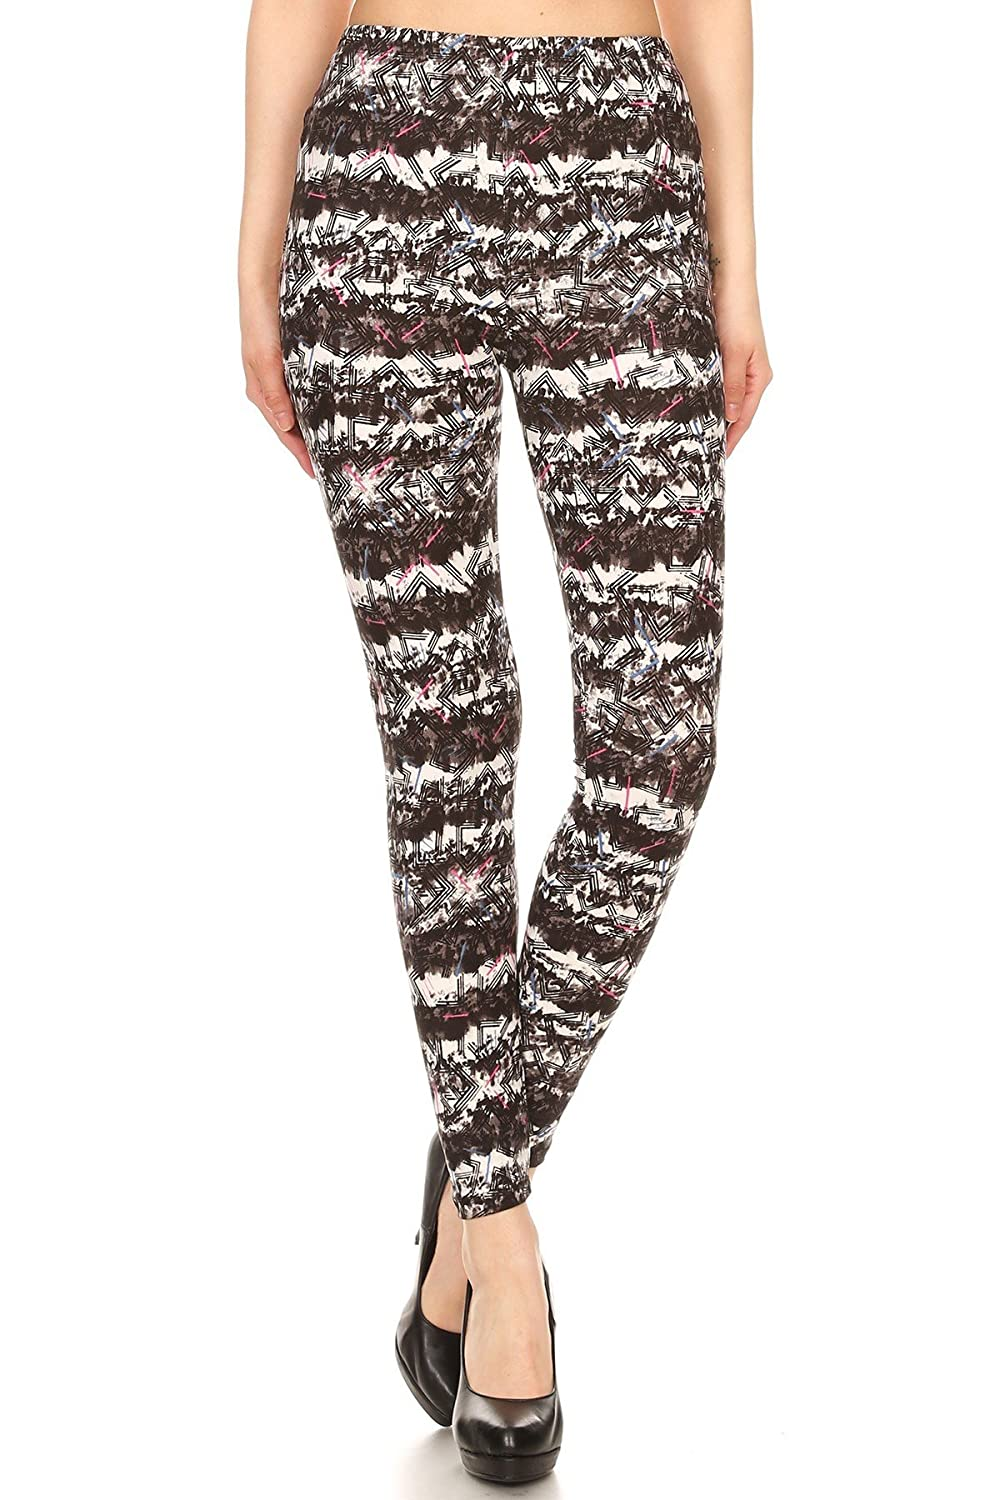 ff5f4b55d37970 Black Pink Blue Abstract Chevron pattern printed leggings for regular.  Comfortable elastic waist band. Length: 35 inches, Inseam: 26.5 inches.